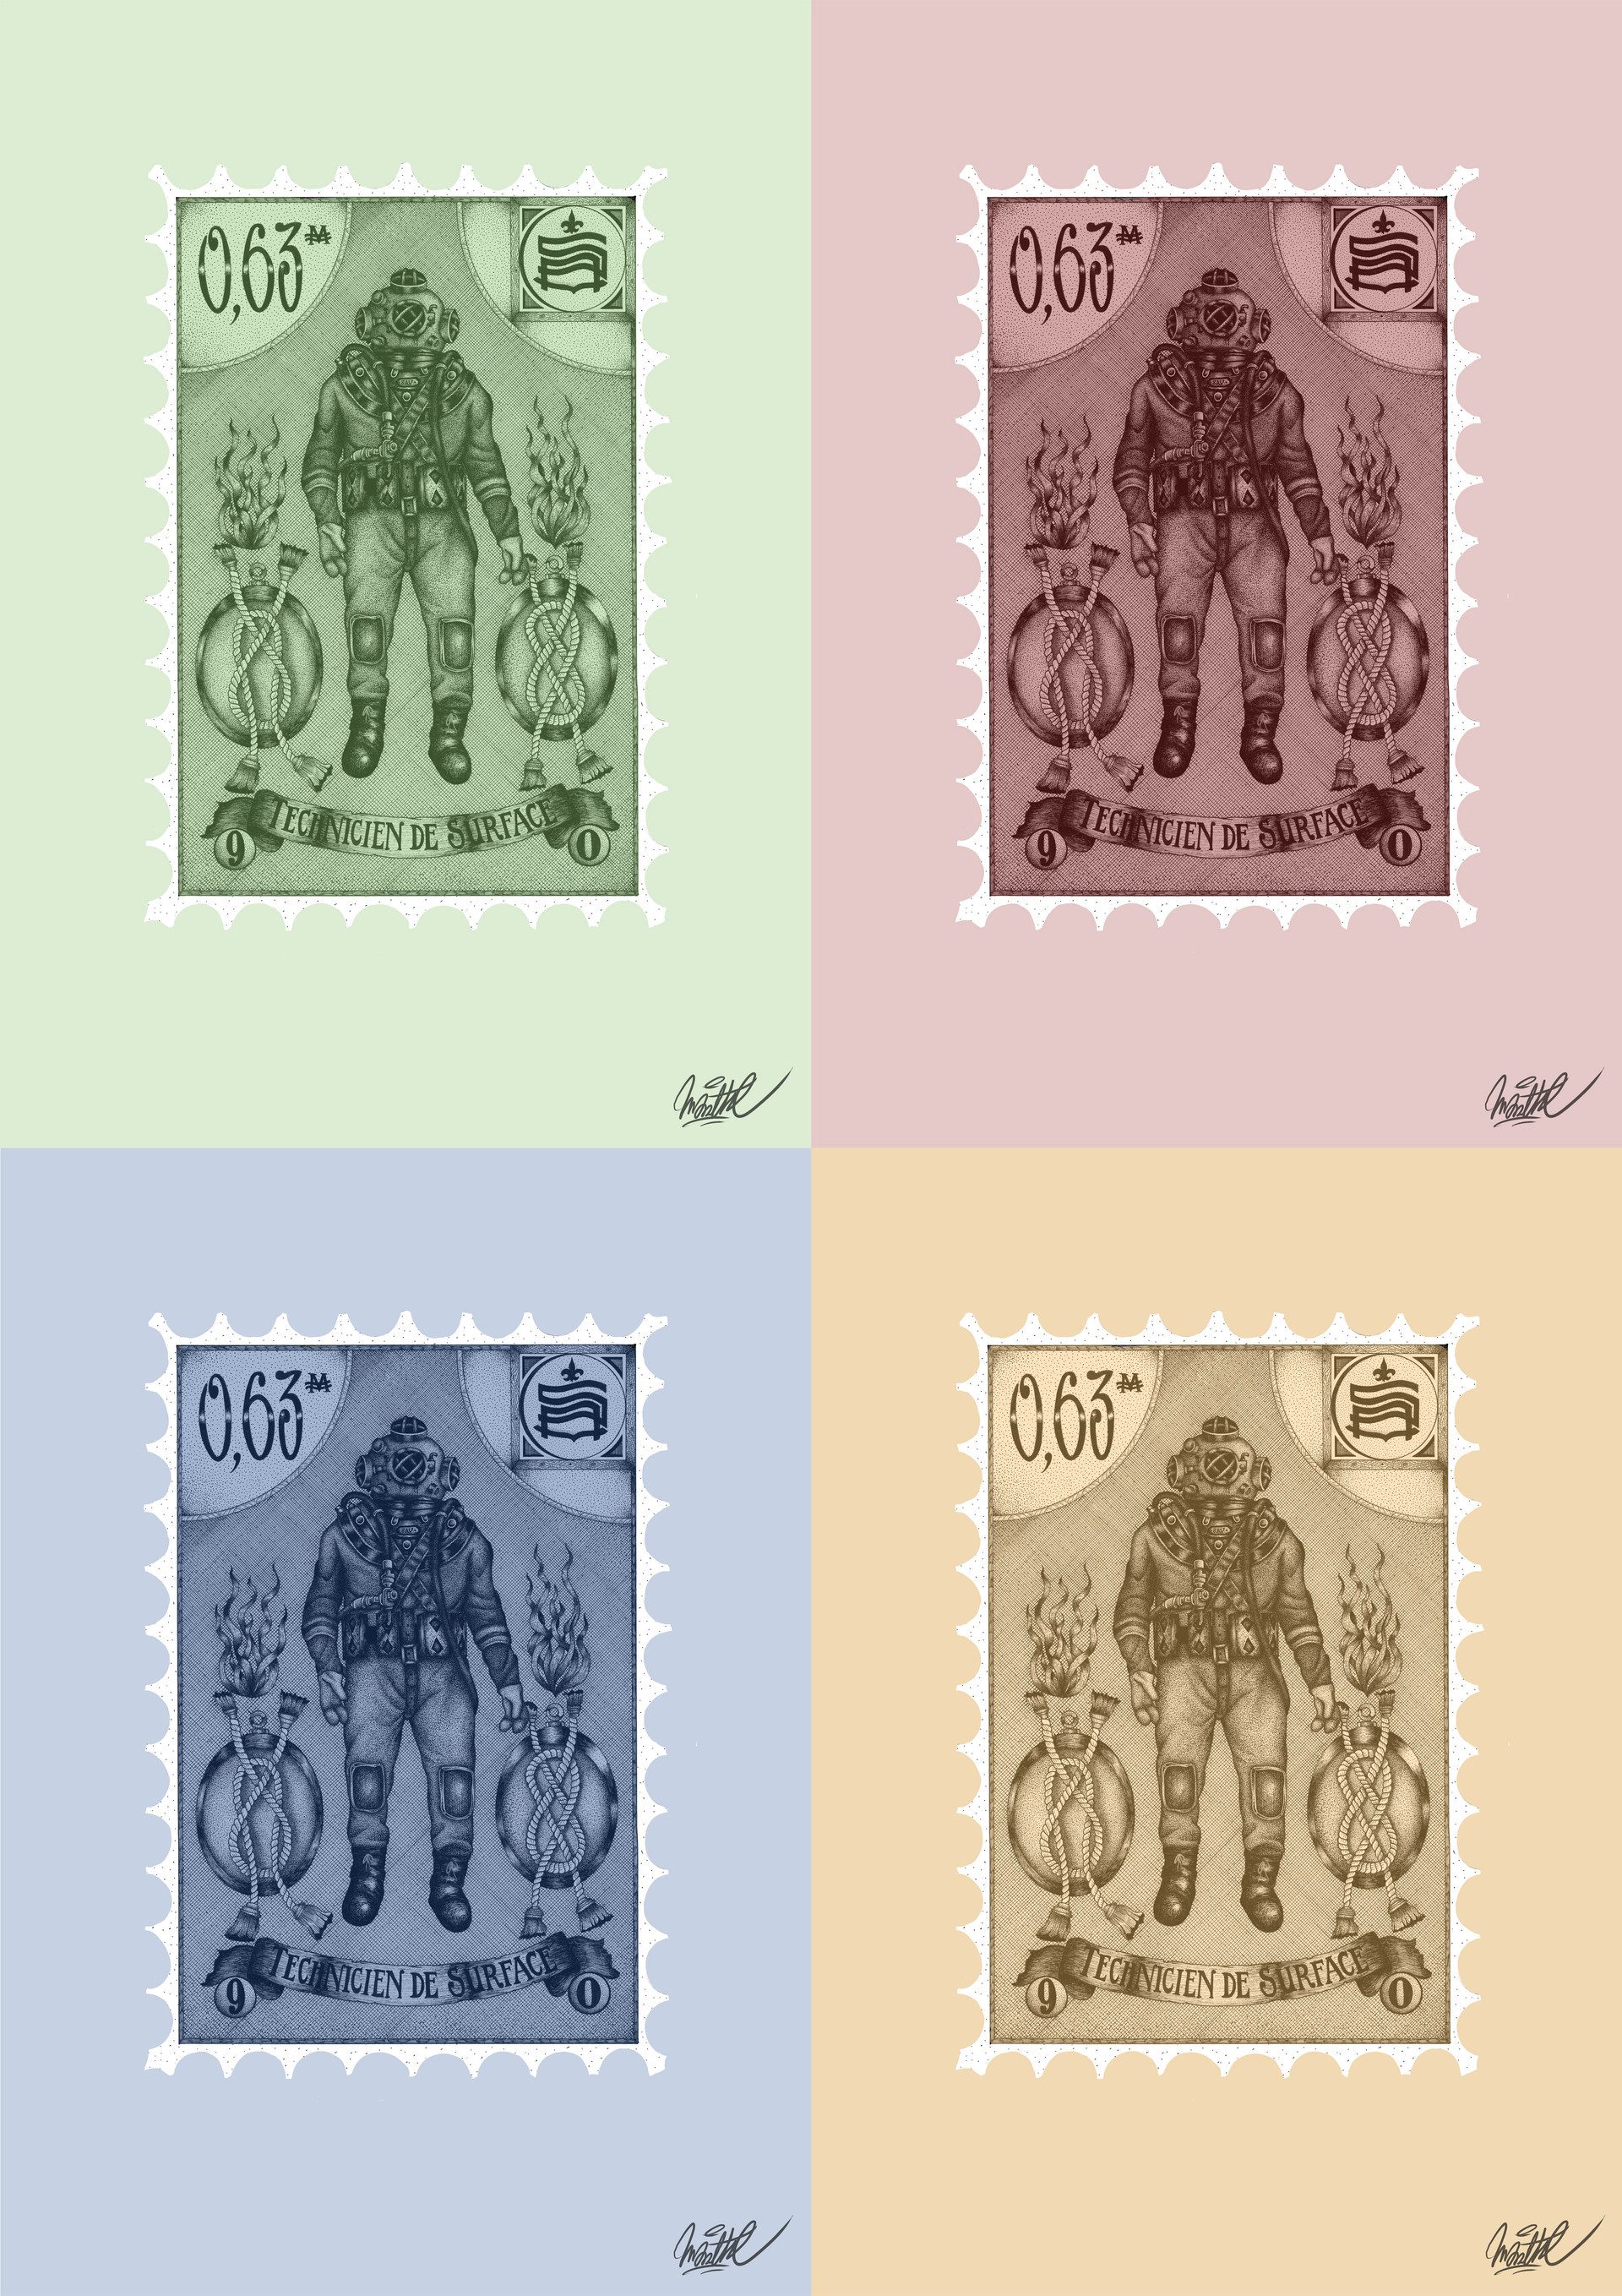 4 Timbres.jpg